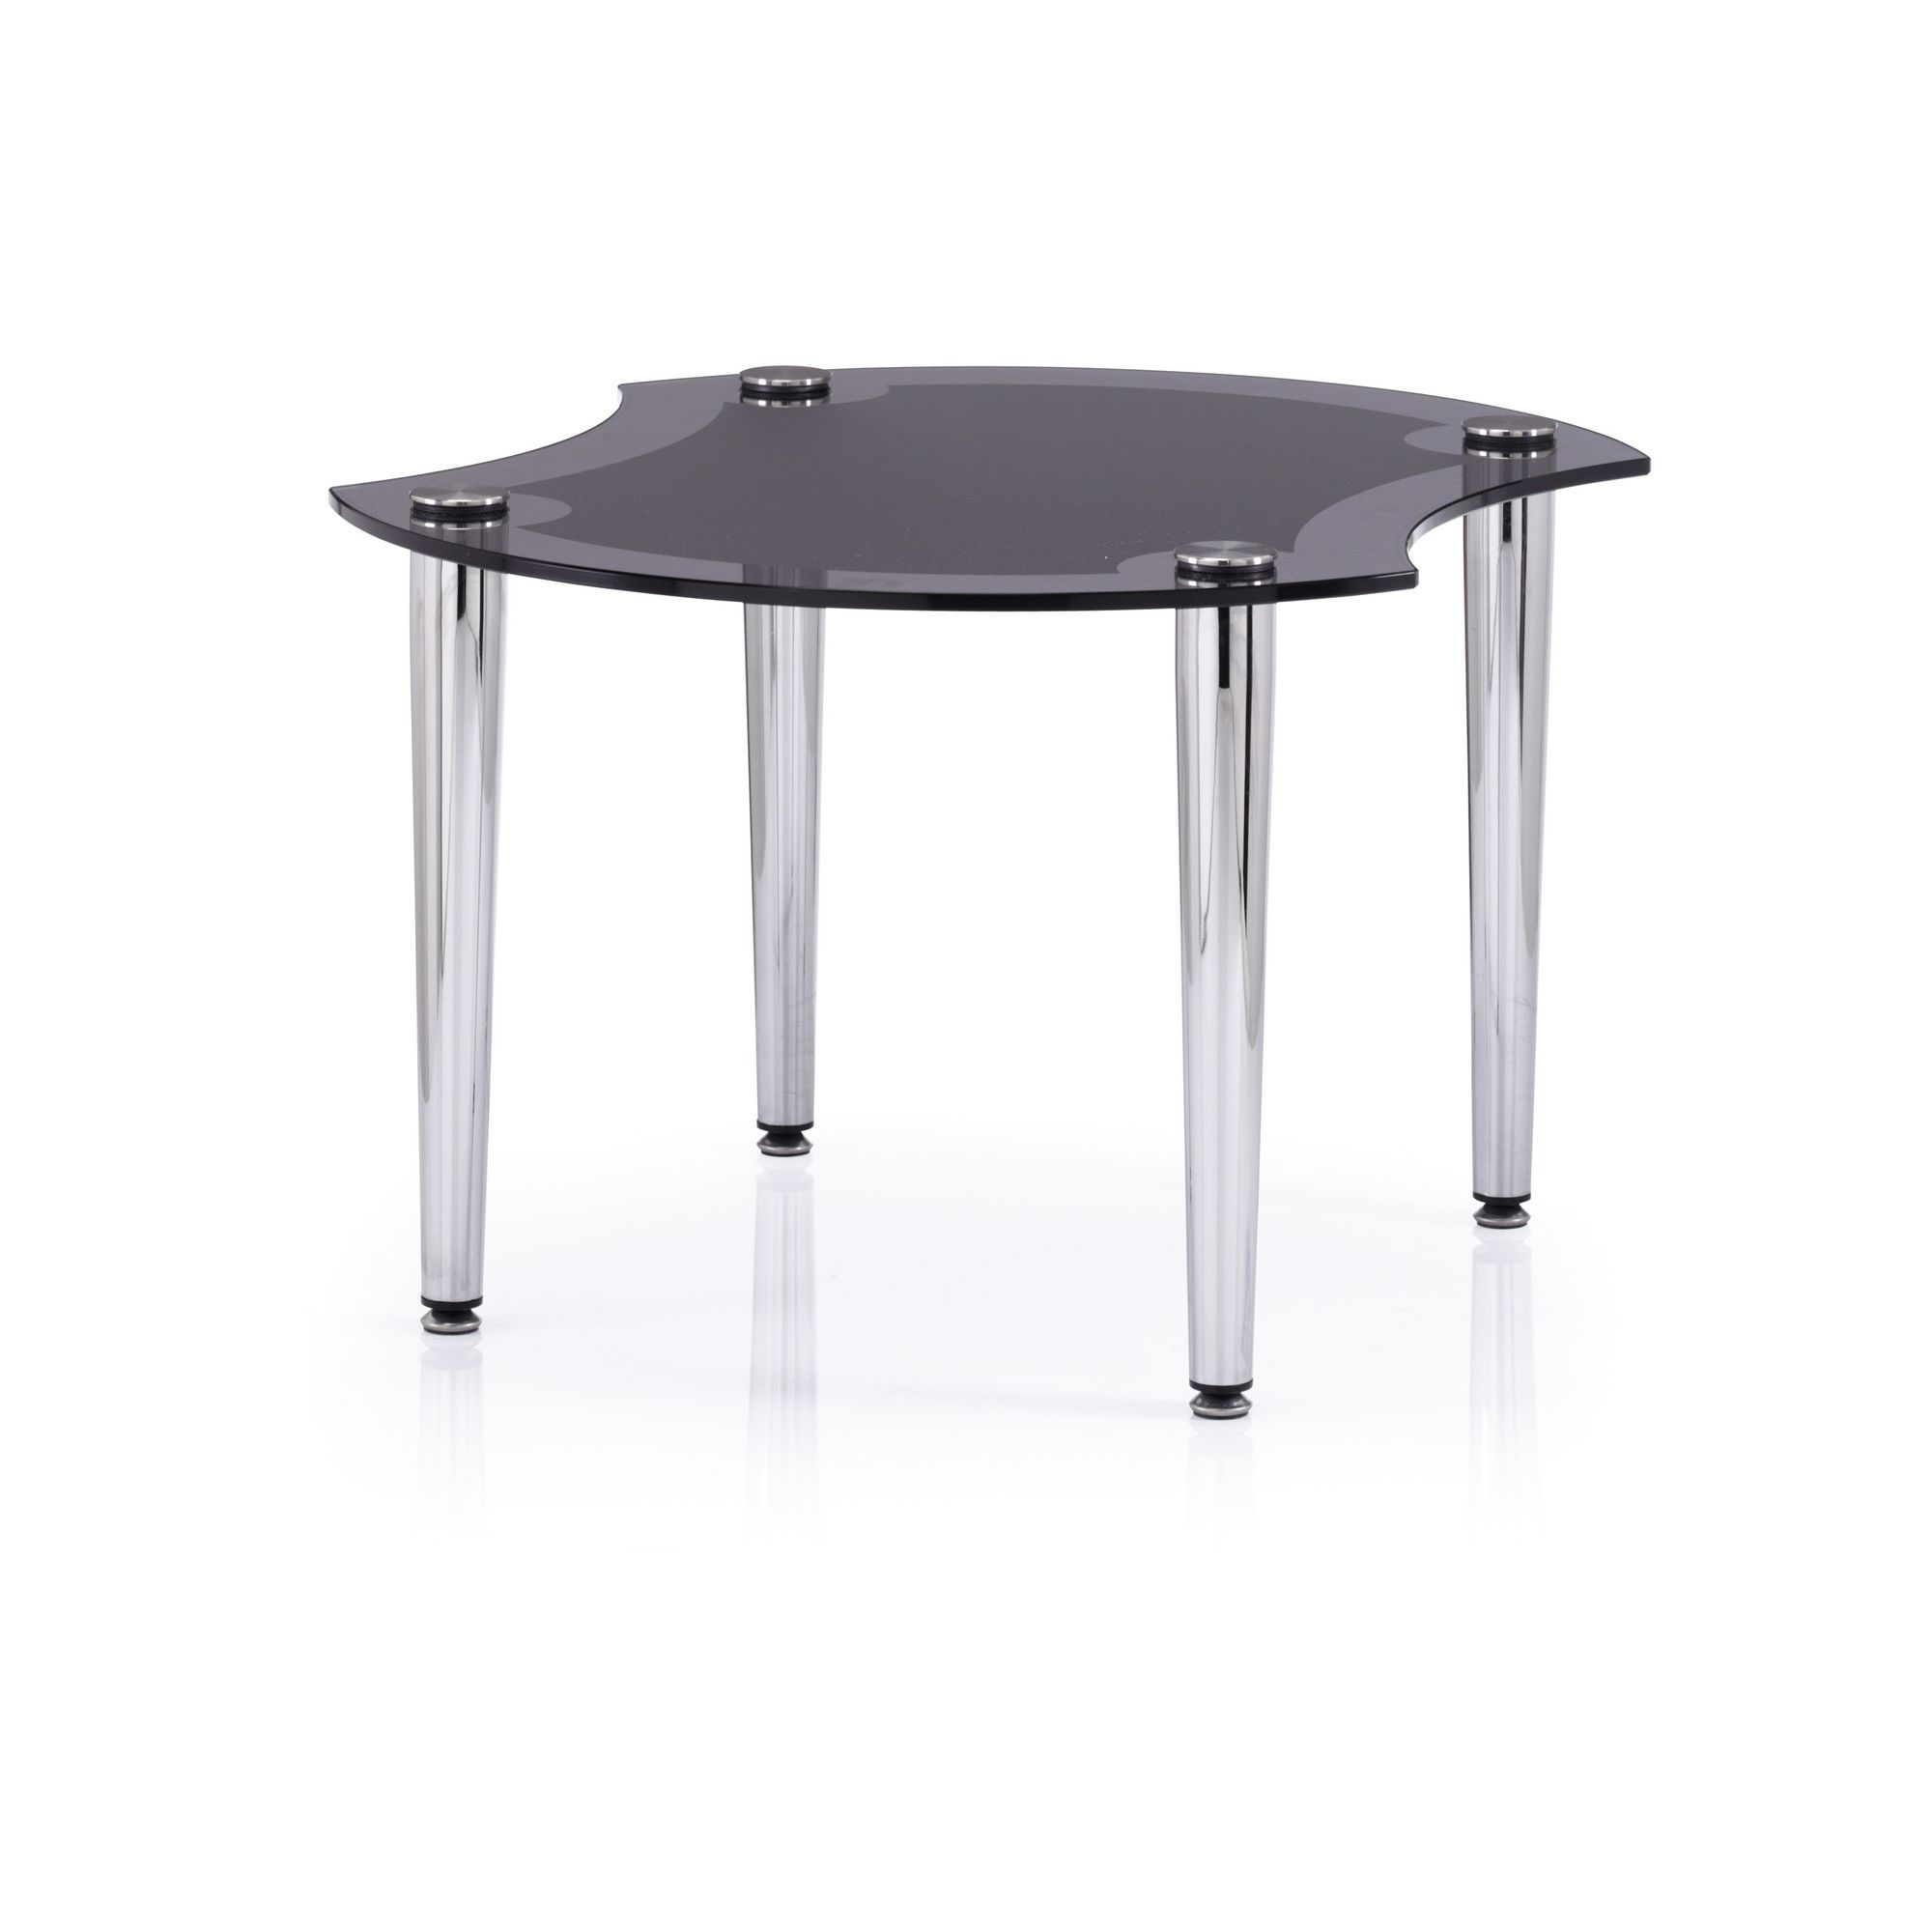 Ocee Design Casino Centre Table at Tesco Direct